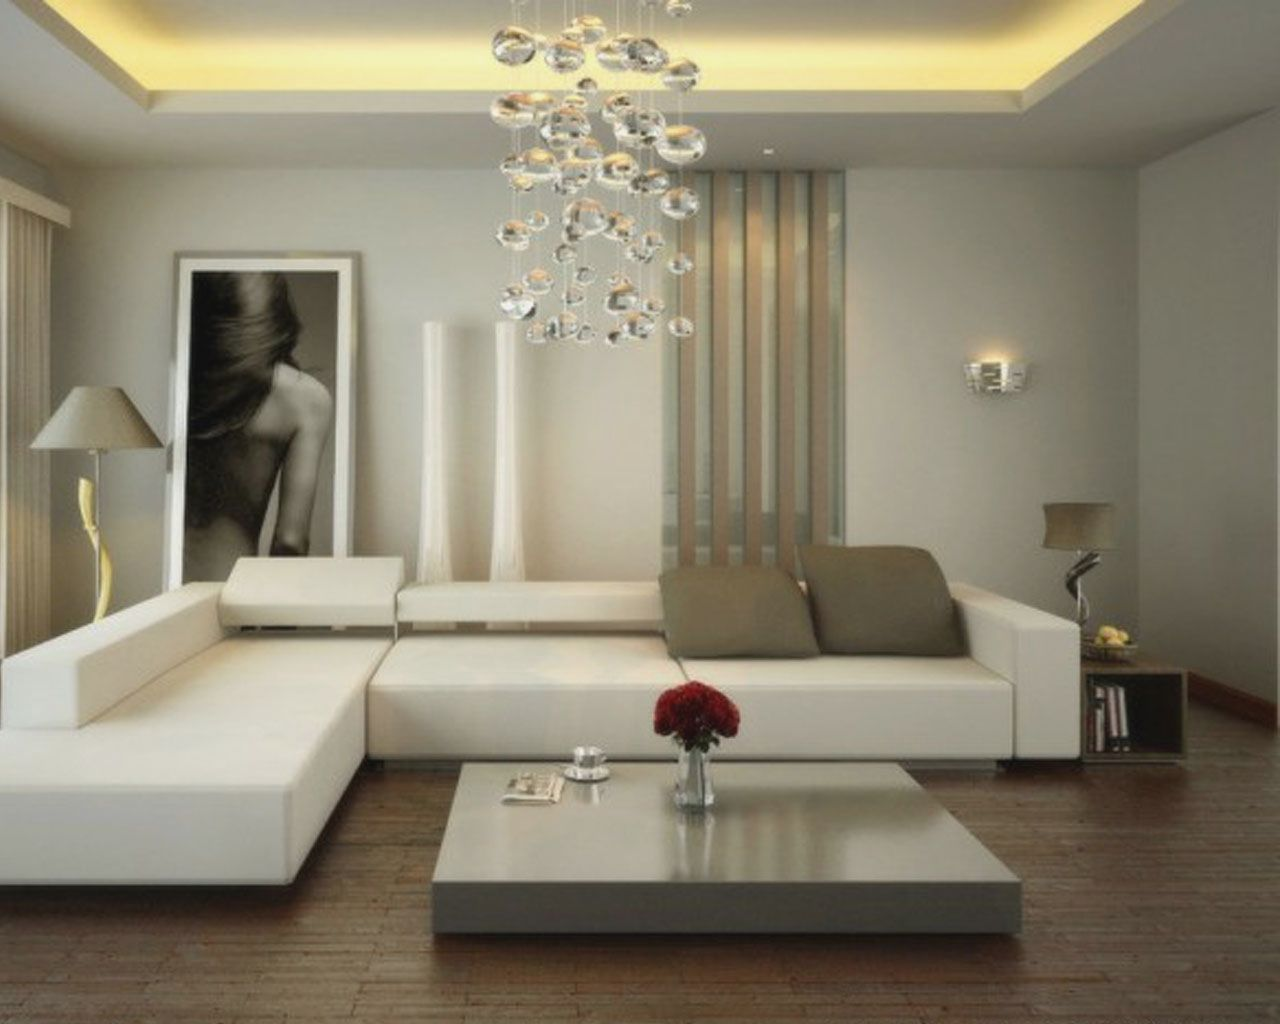 Simple interior design living room indian style more for Minimalist lifestyle india